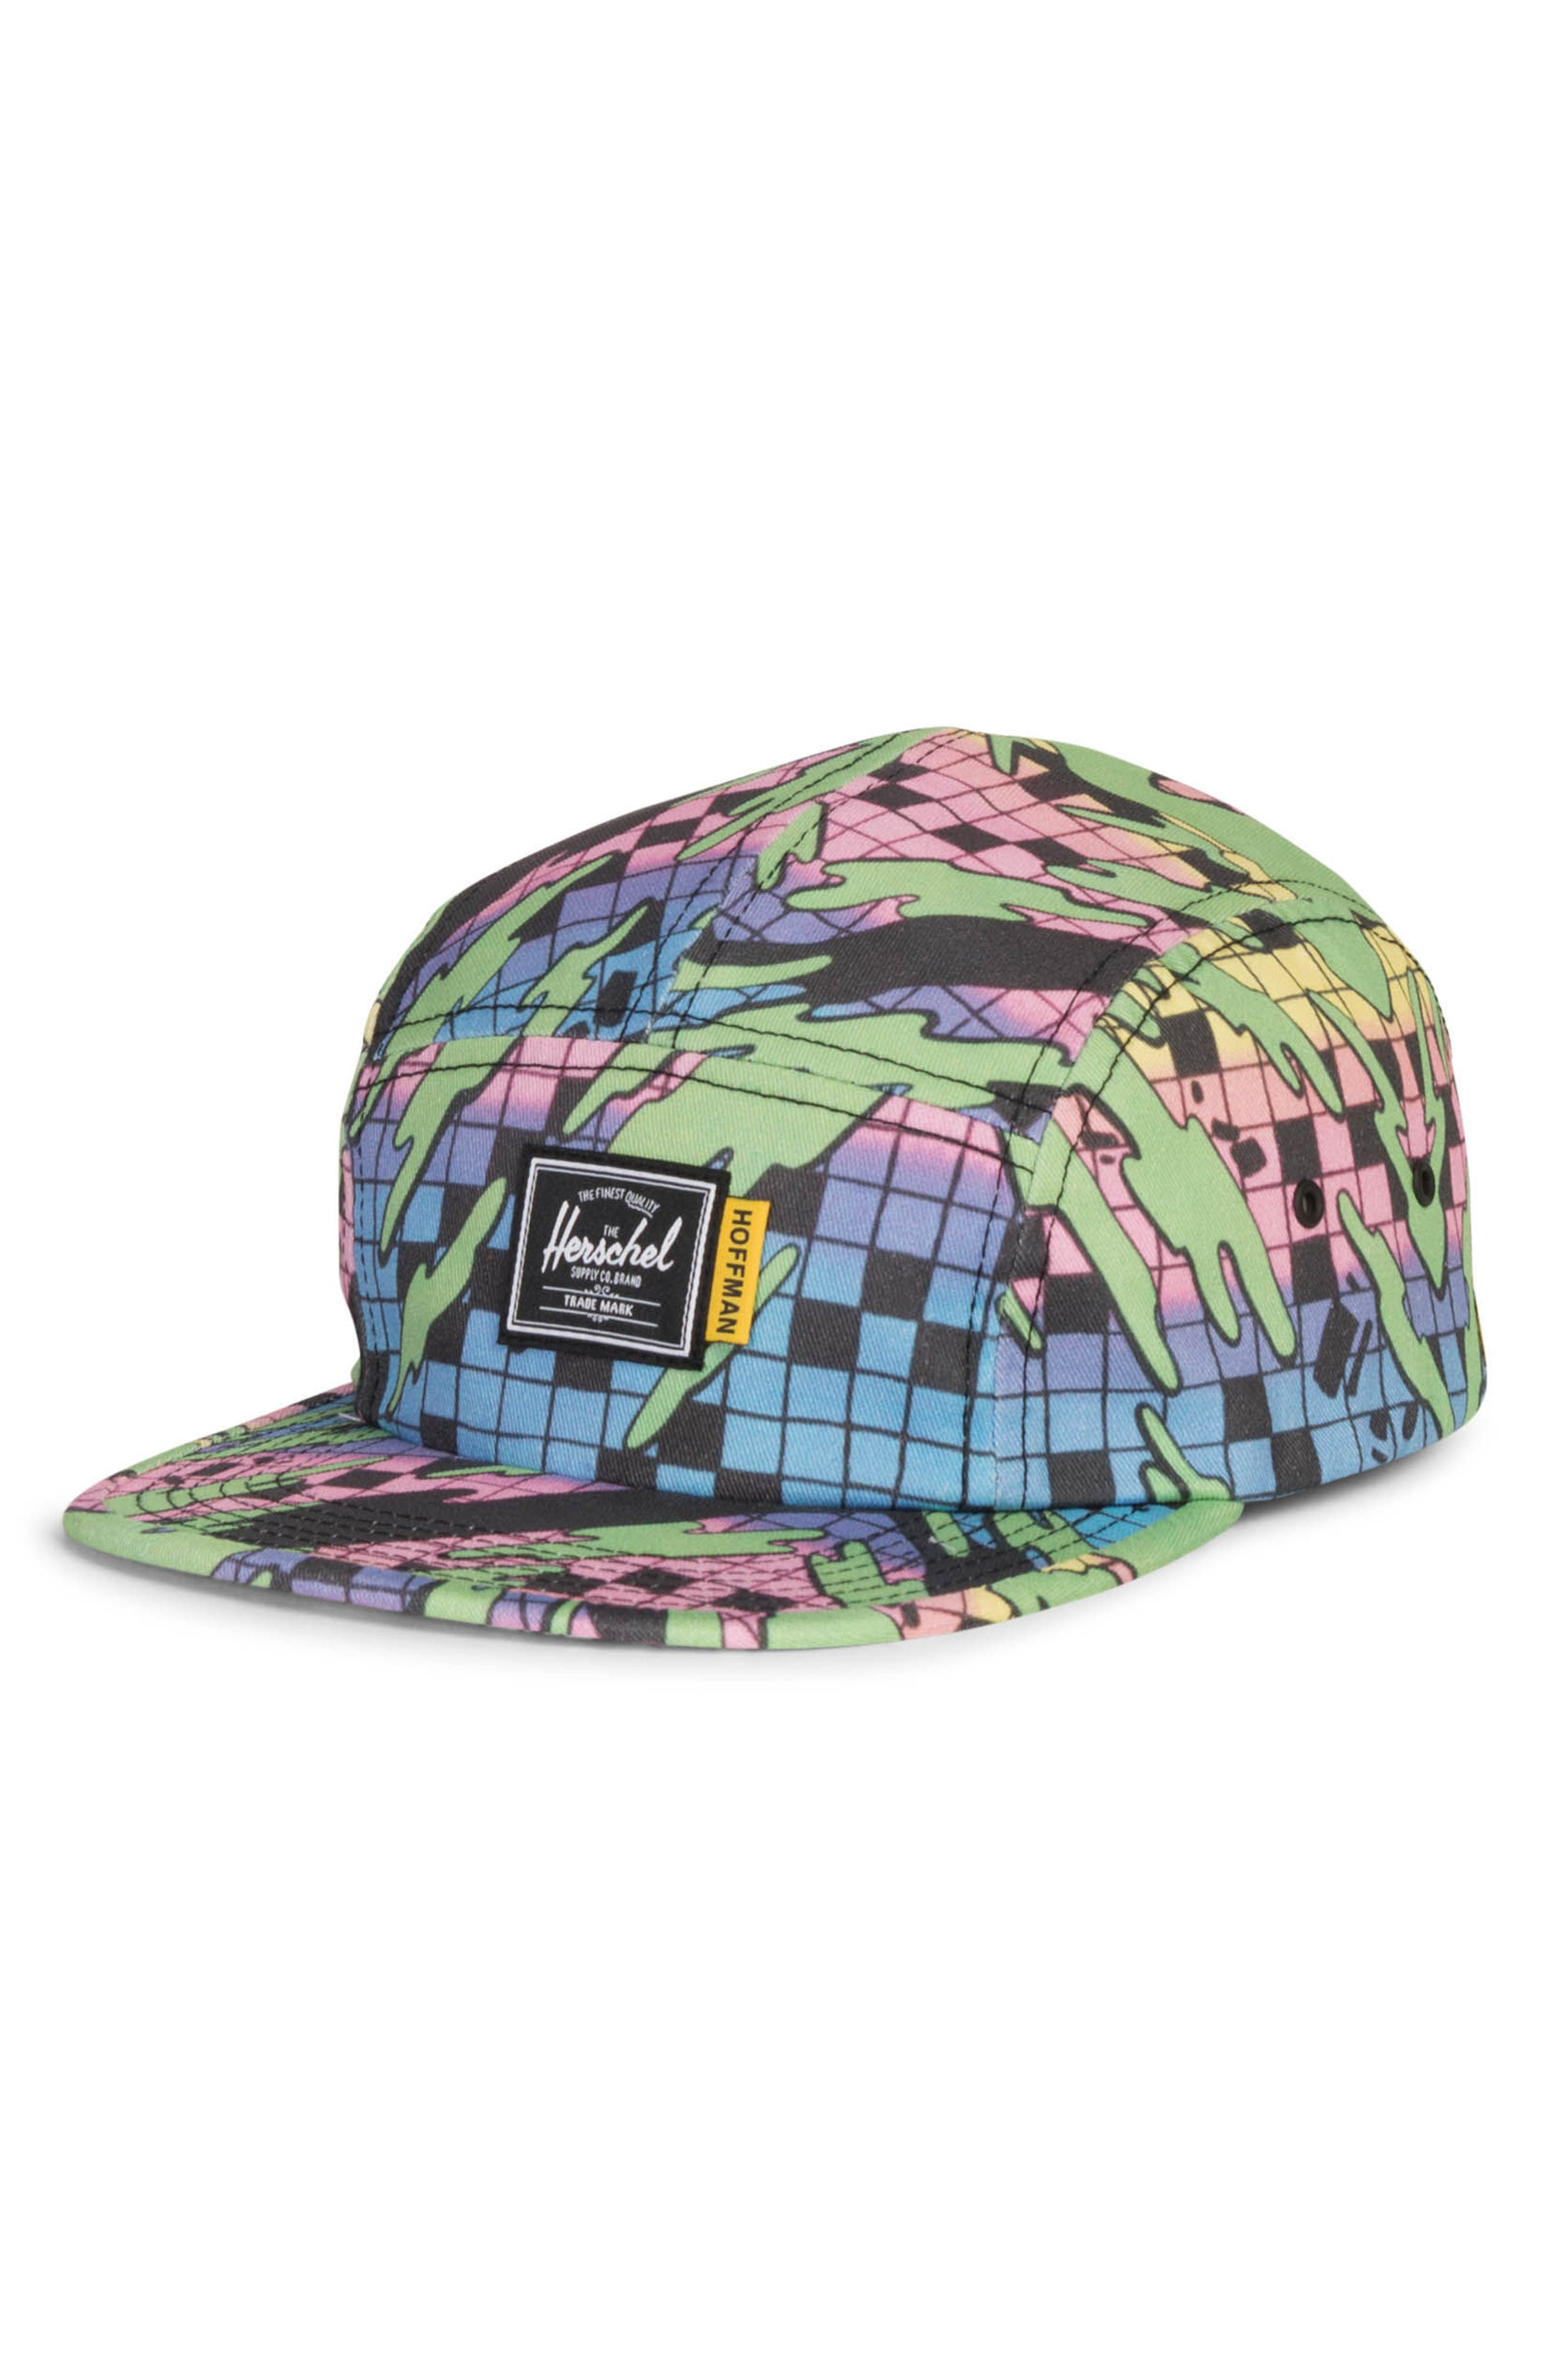 Eye-catching color adds  80s surf style to a bold cap with undeniable  appeal. Style Name  Herschel Supply Co. Hoffman Glendale Cap. Style Number   5568165. d207b47c1c16